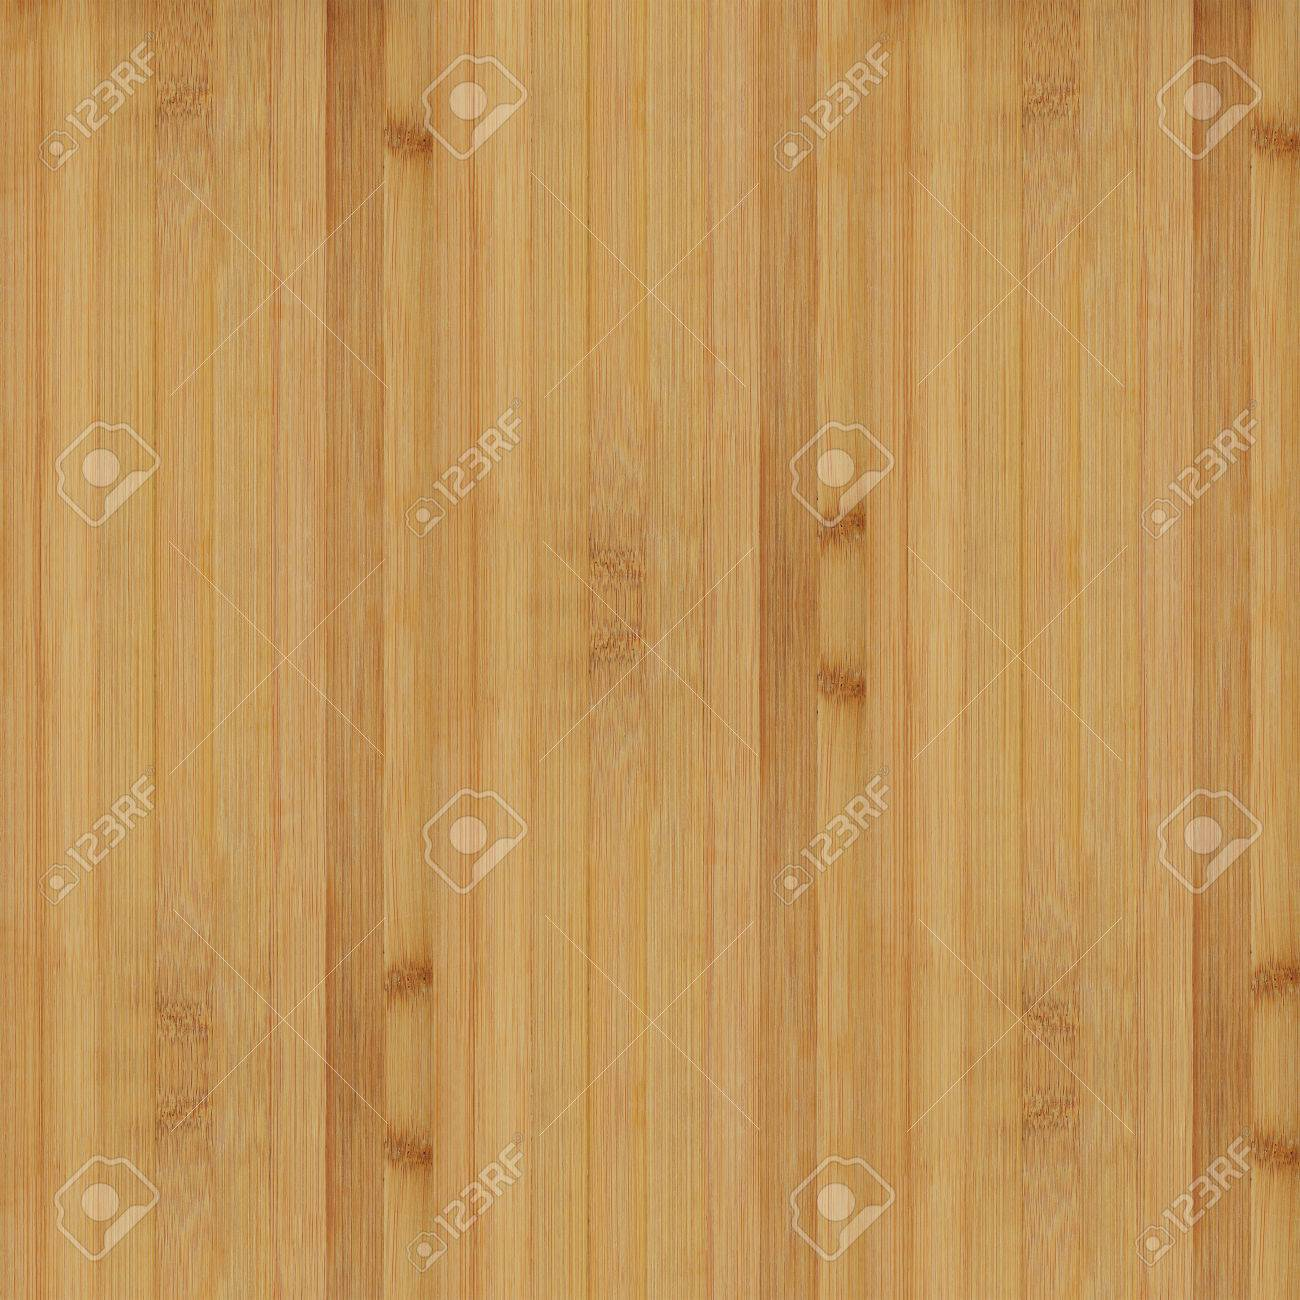 Bamboo Wood Texture Plank Bamboo Flooring In Warm Colors Stock